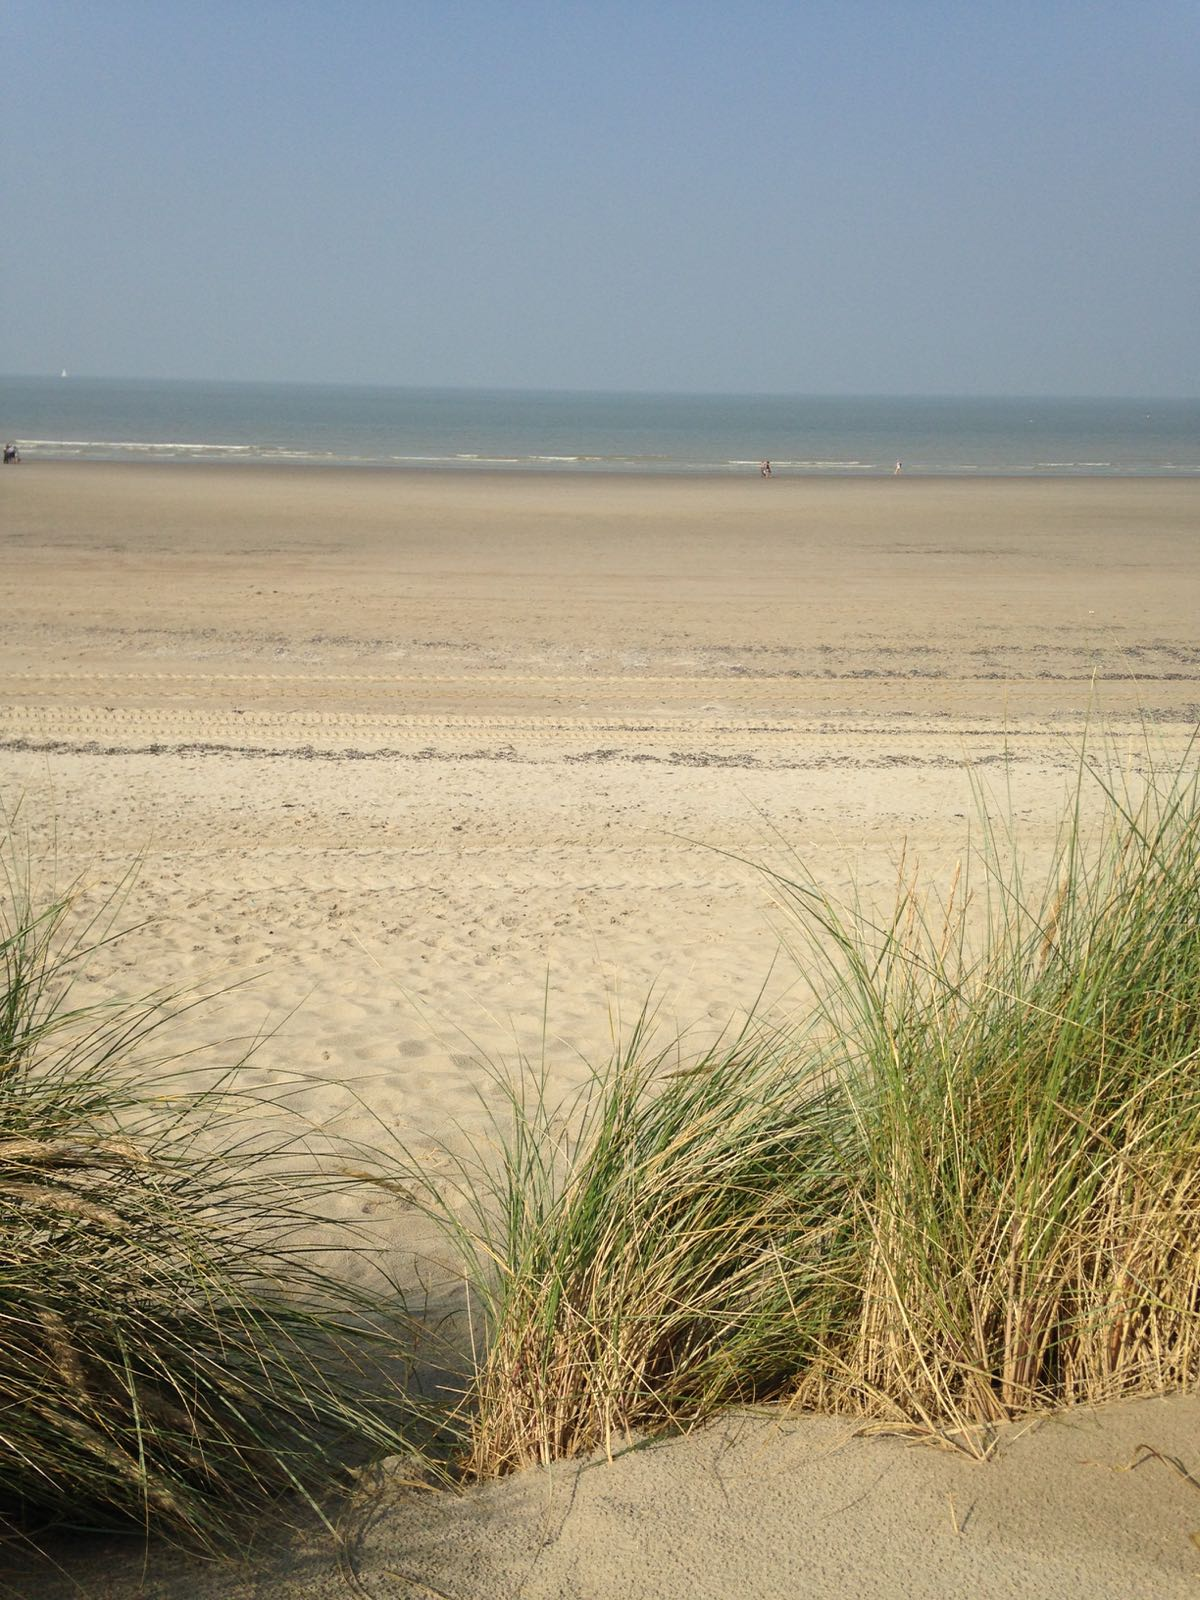 http://www.nordsee-chalet.com/wp-content/uploads/2017/03/IMG-20170218-WA0017.jpg